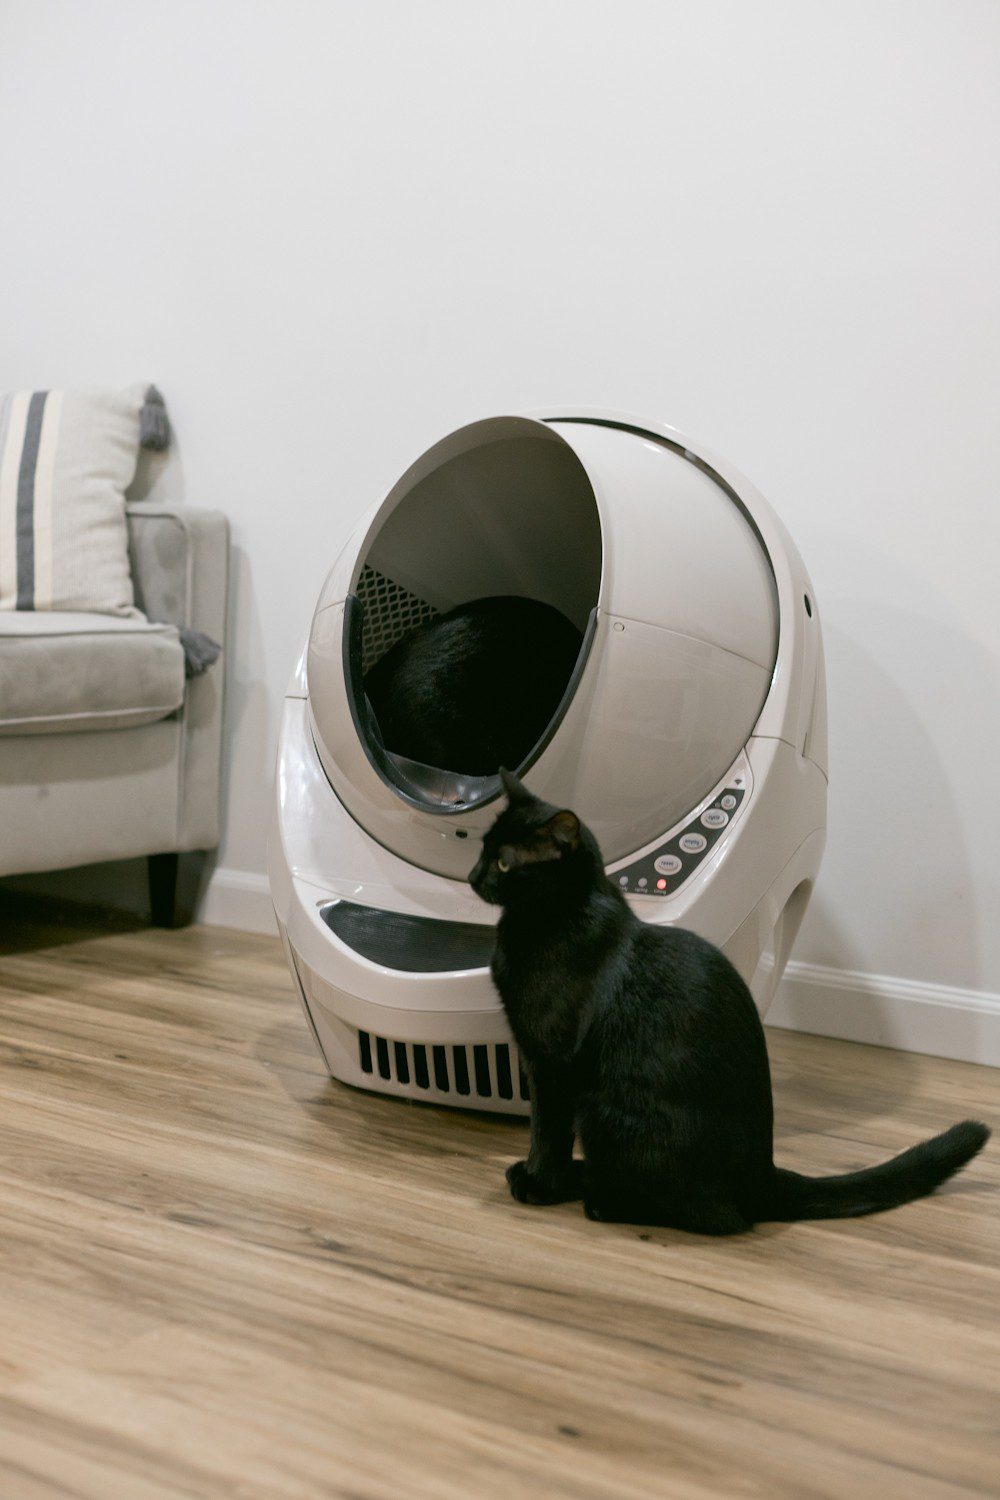 Kitten Care Tips: 5 Essentials you Need to Raise a Cat by popular lifestyel blogger Tabitha Blue of Fresh Mommy Blog: image of black cat sitting in front of a Litter Robot litter box.